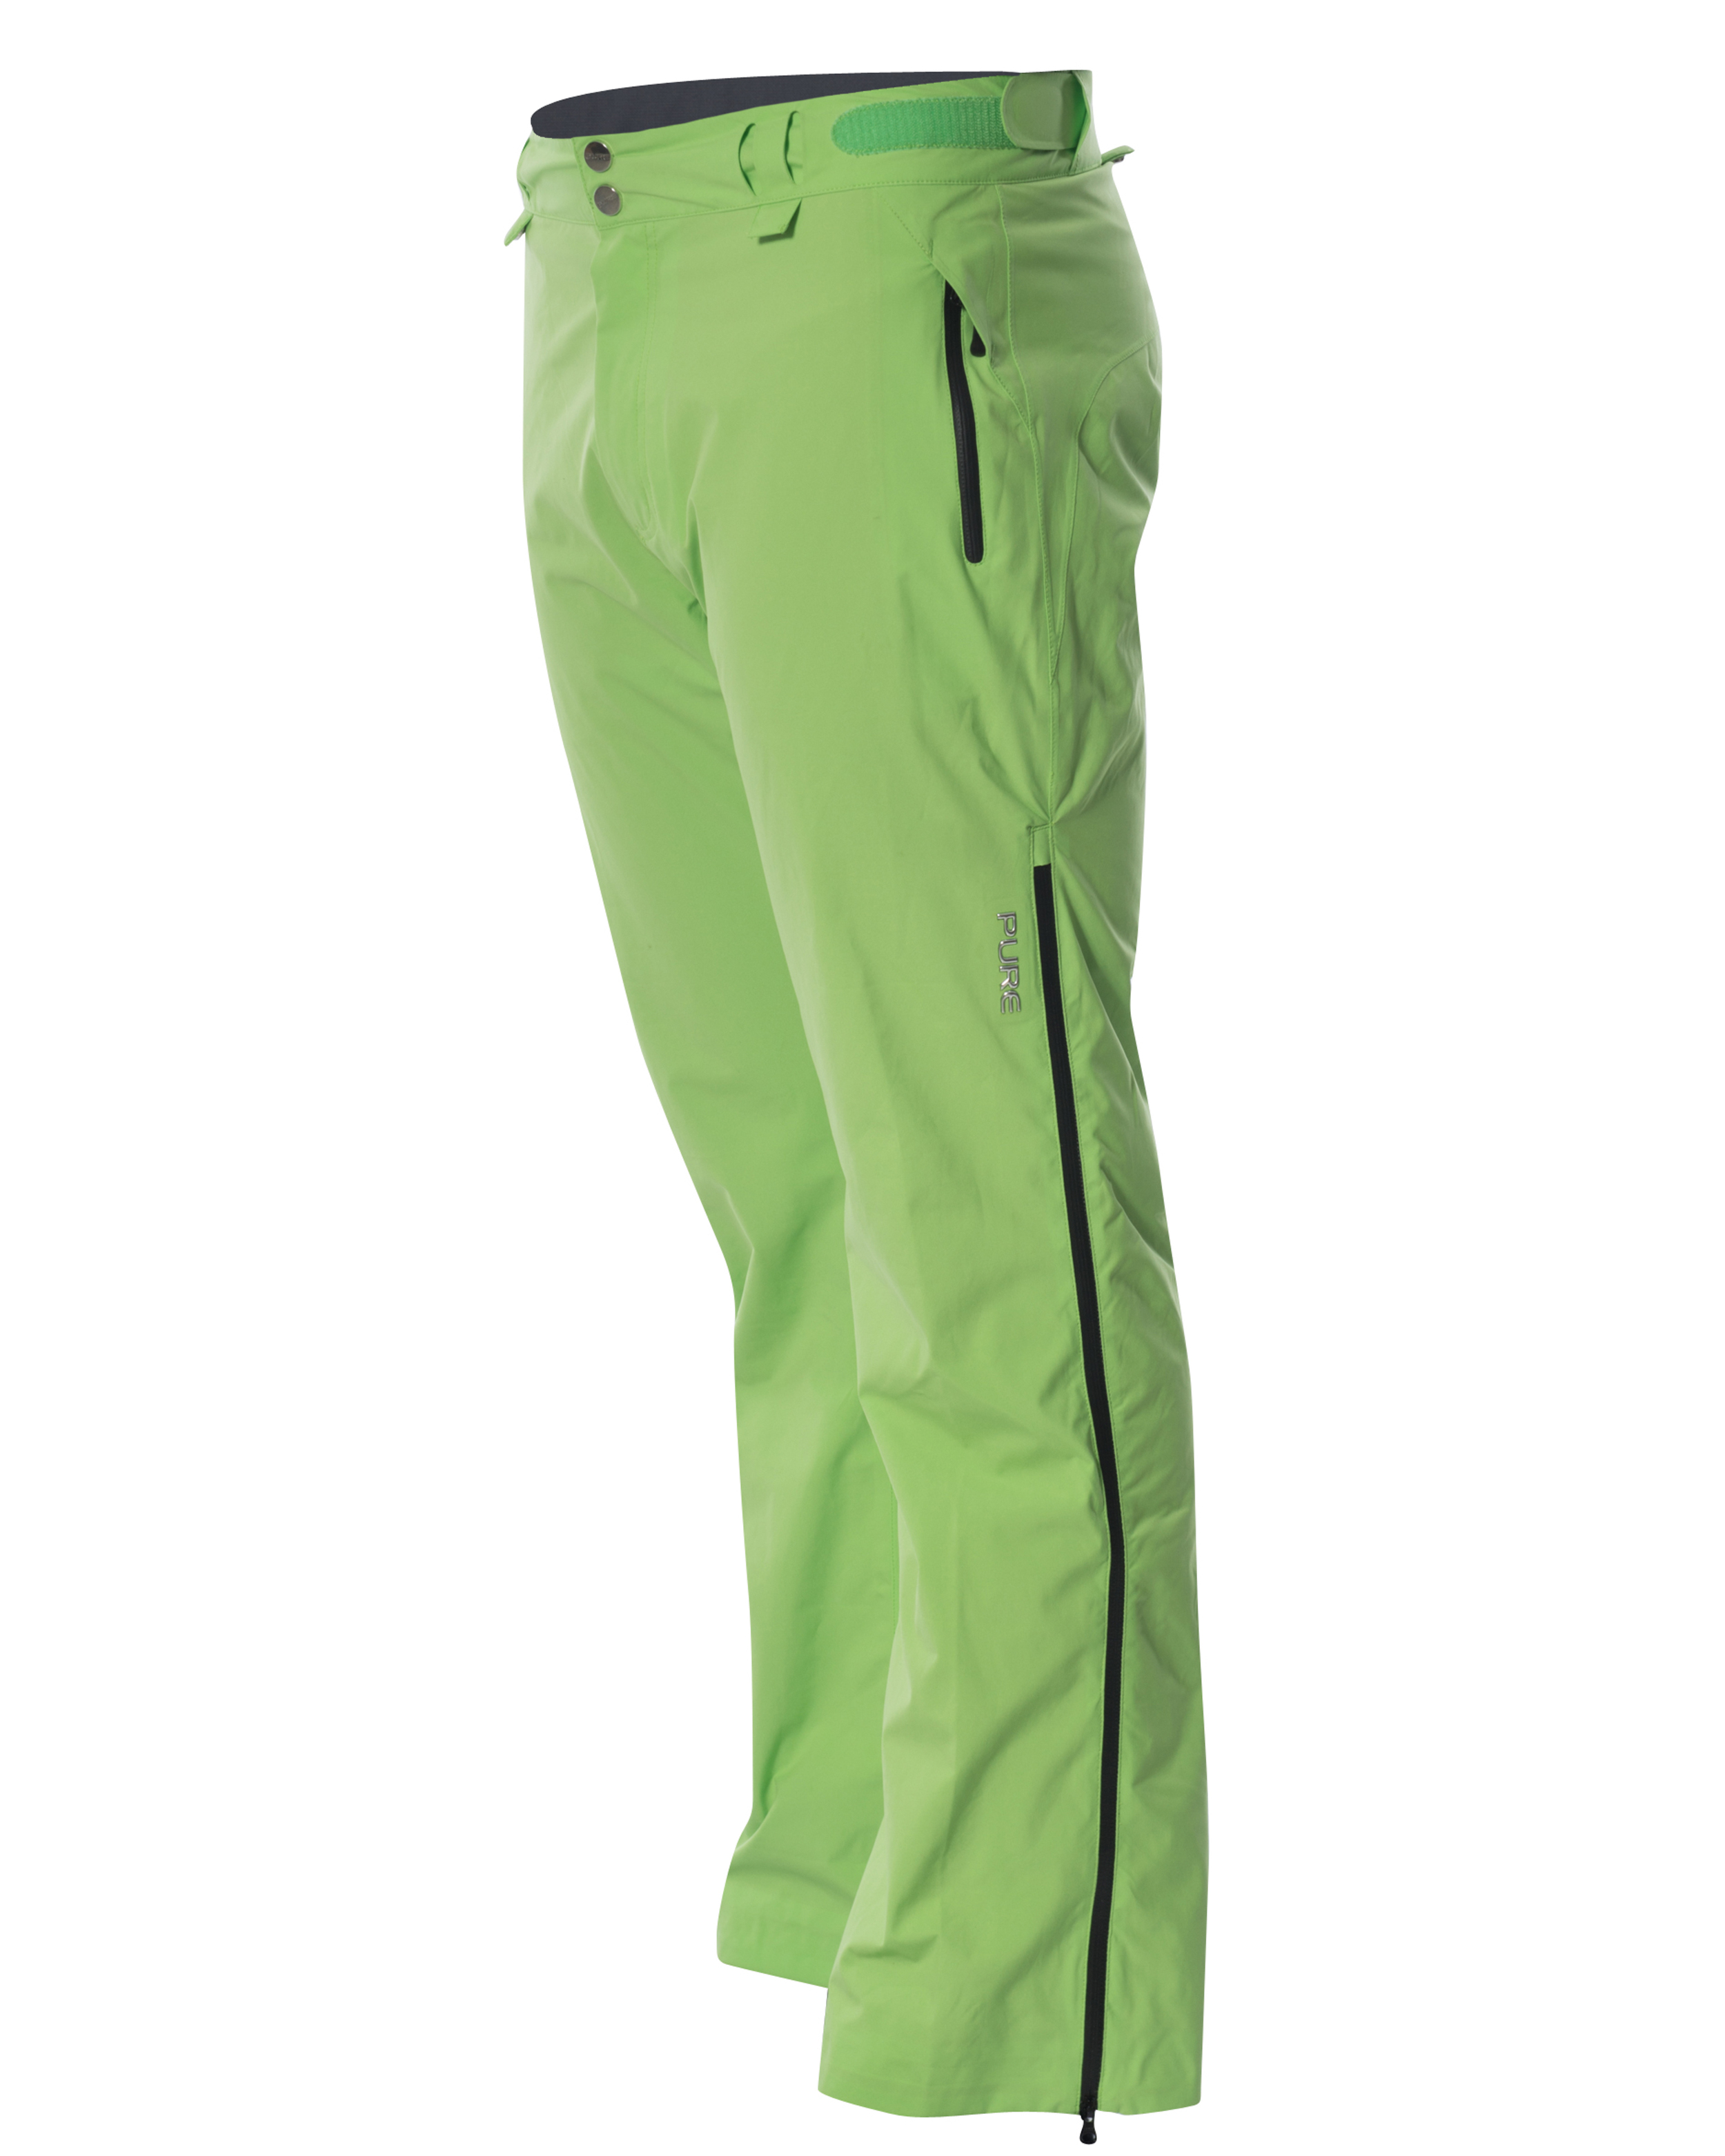 Andes Men's Pure Mountain - Green